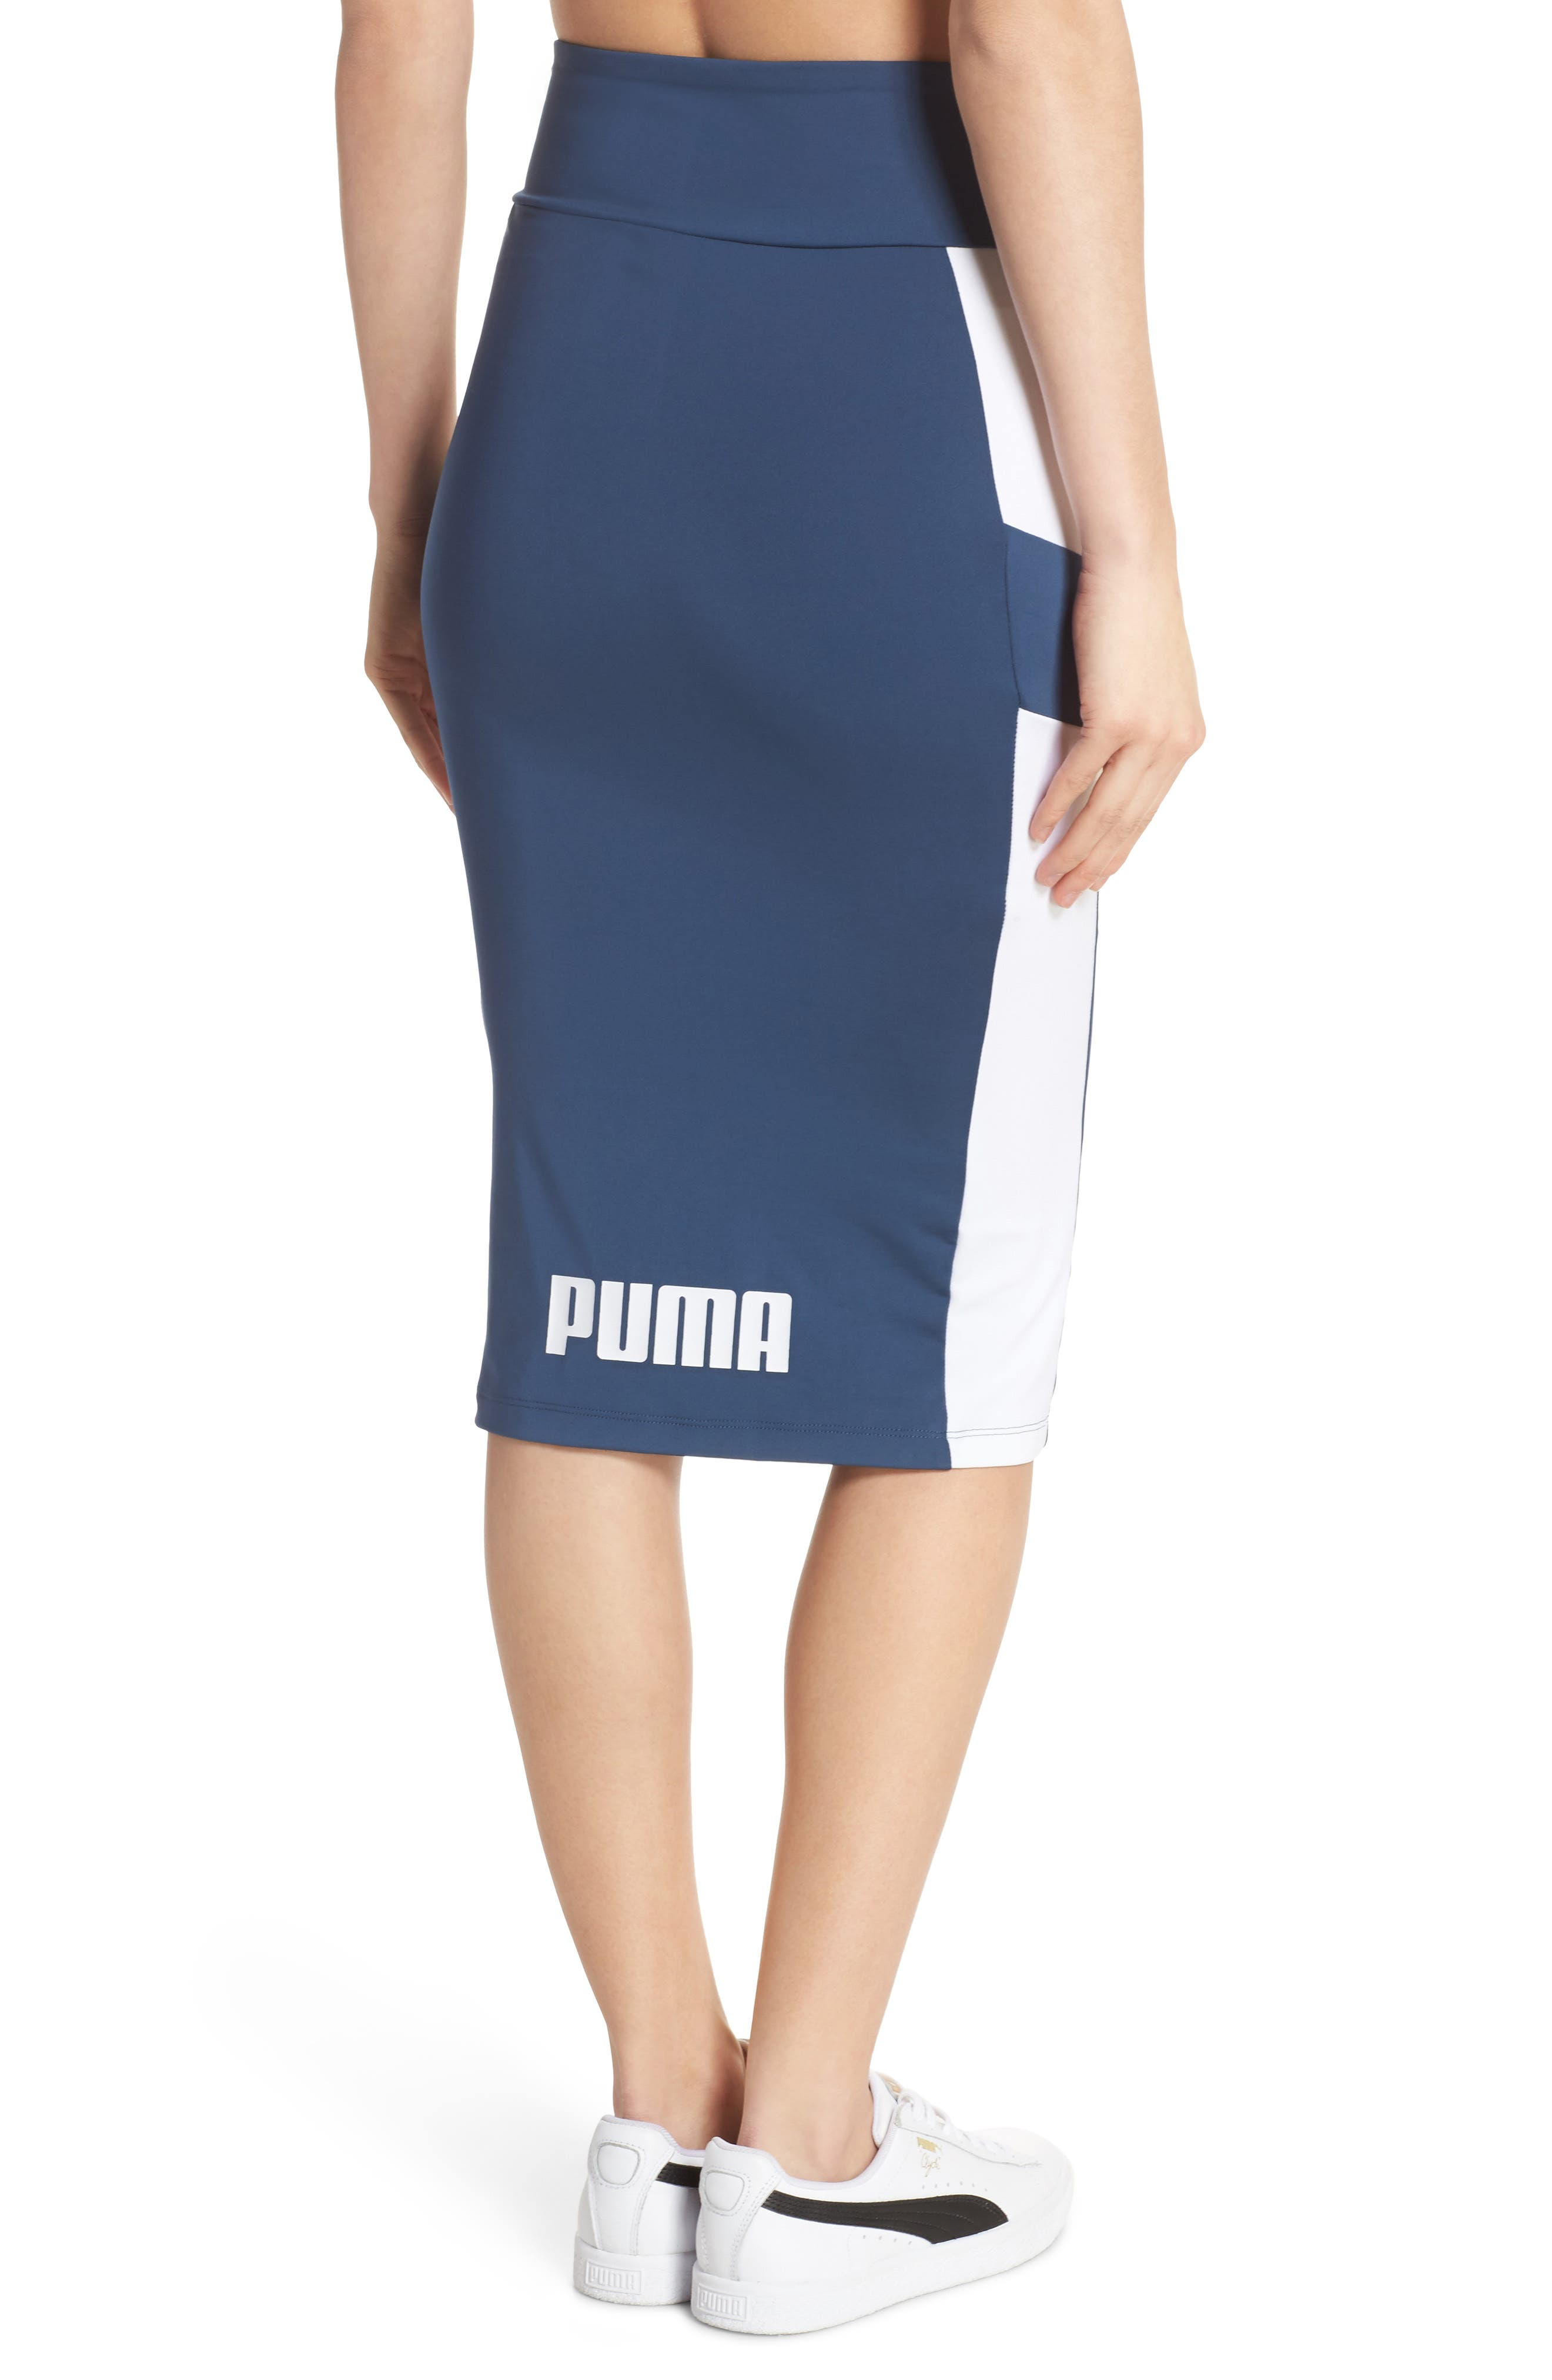 Archive Logo Pencil Skirt,                             Alternate thumbnail 2, color,                             403